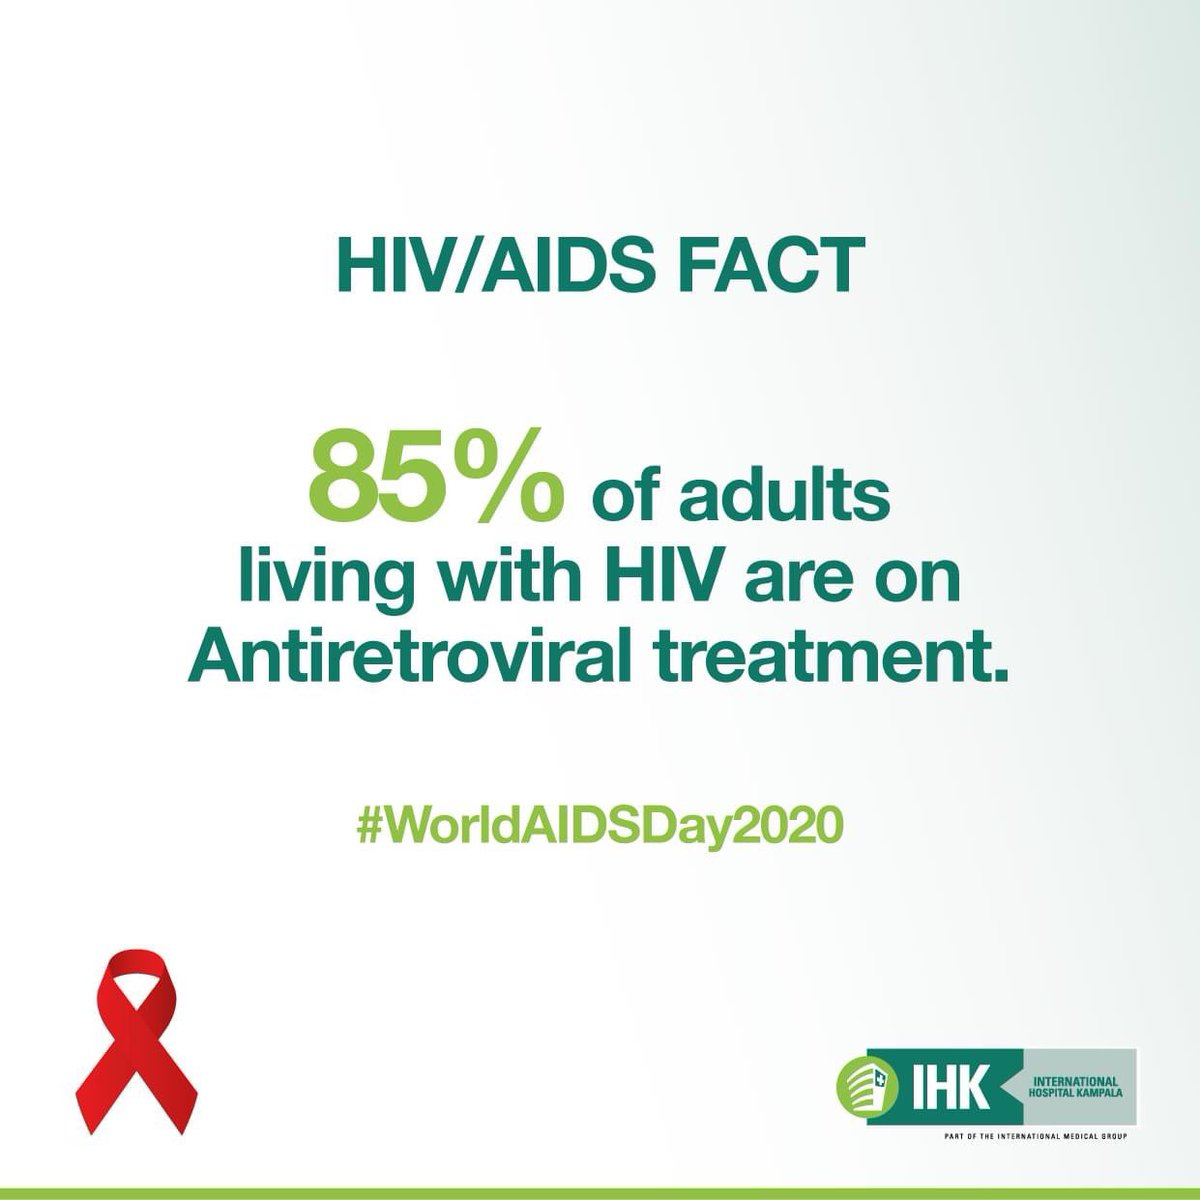 85% of adults living with HIV are on Antiretroviral treatment. #AIDSAwareness #WorldAIDSDay2020